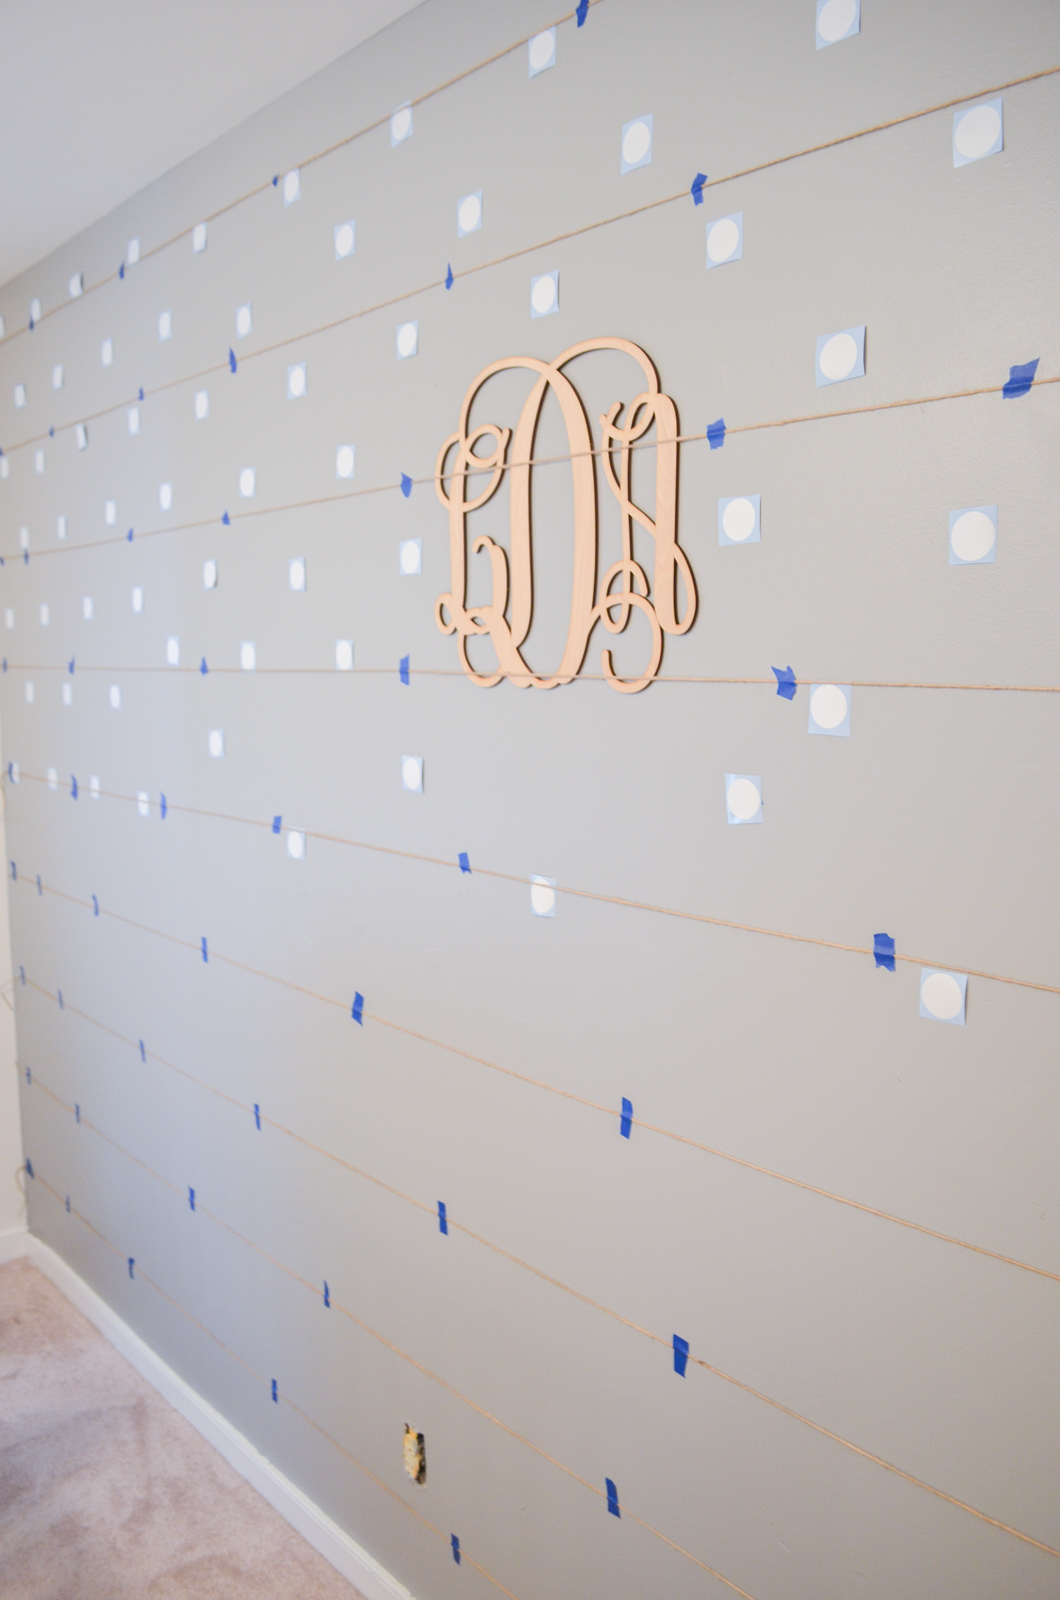 how to make a polka dot accent wall - must-have tips for a diy polka dot nursery wall | bylaurenm.com